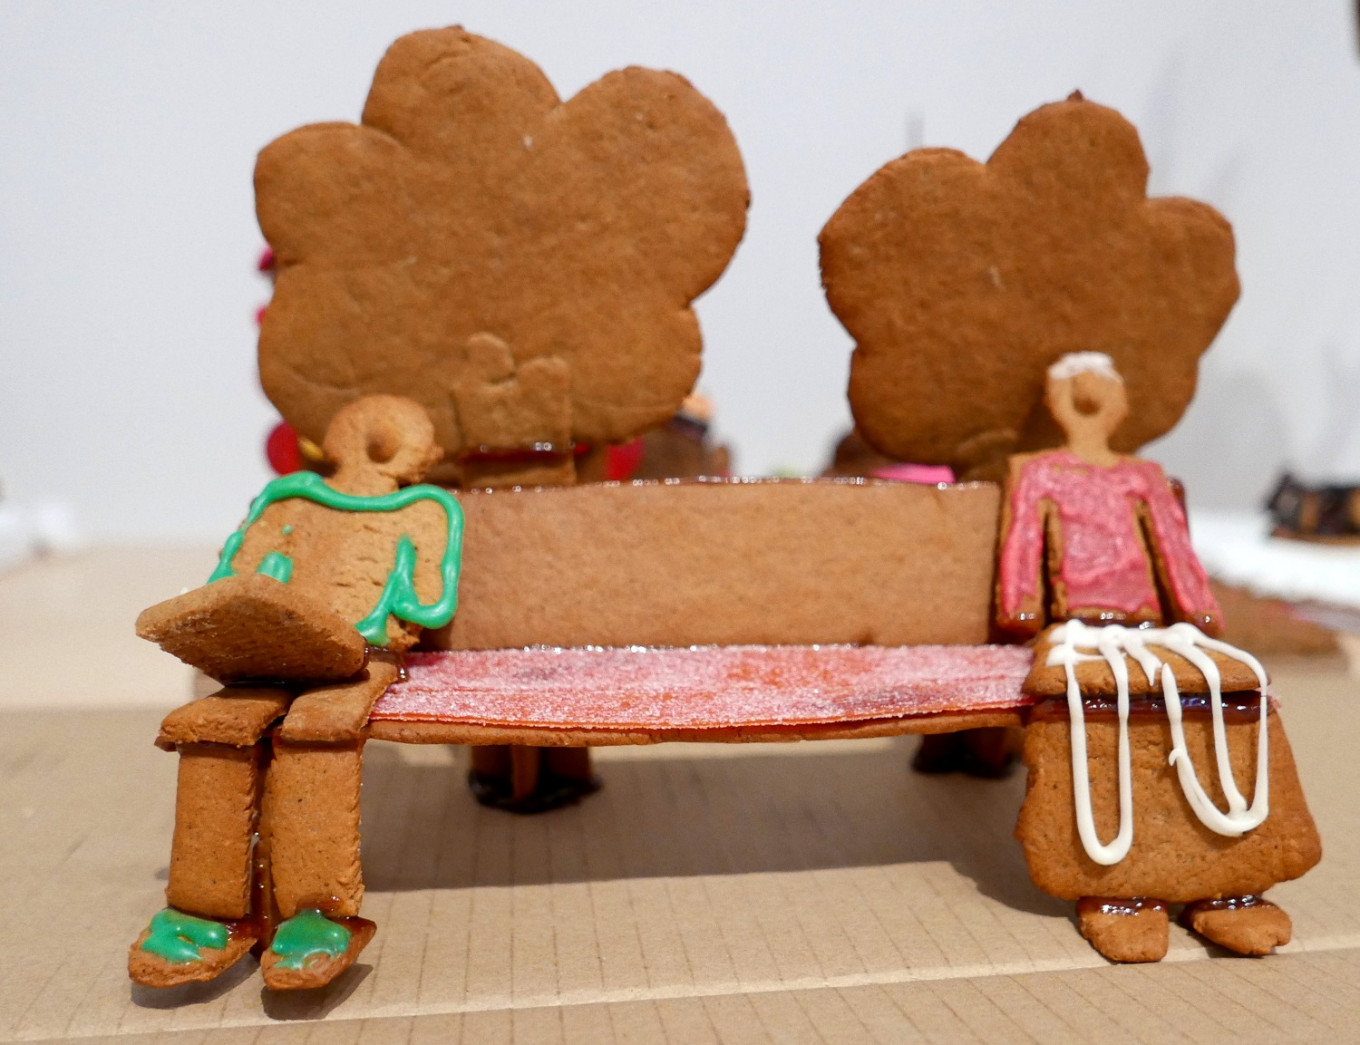 Socially distanced gingerbread illustrates Sweden's pandemic year